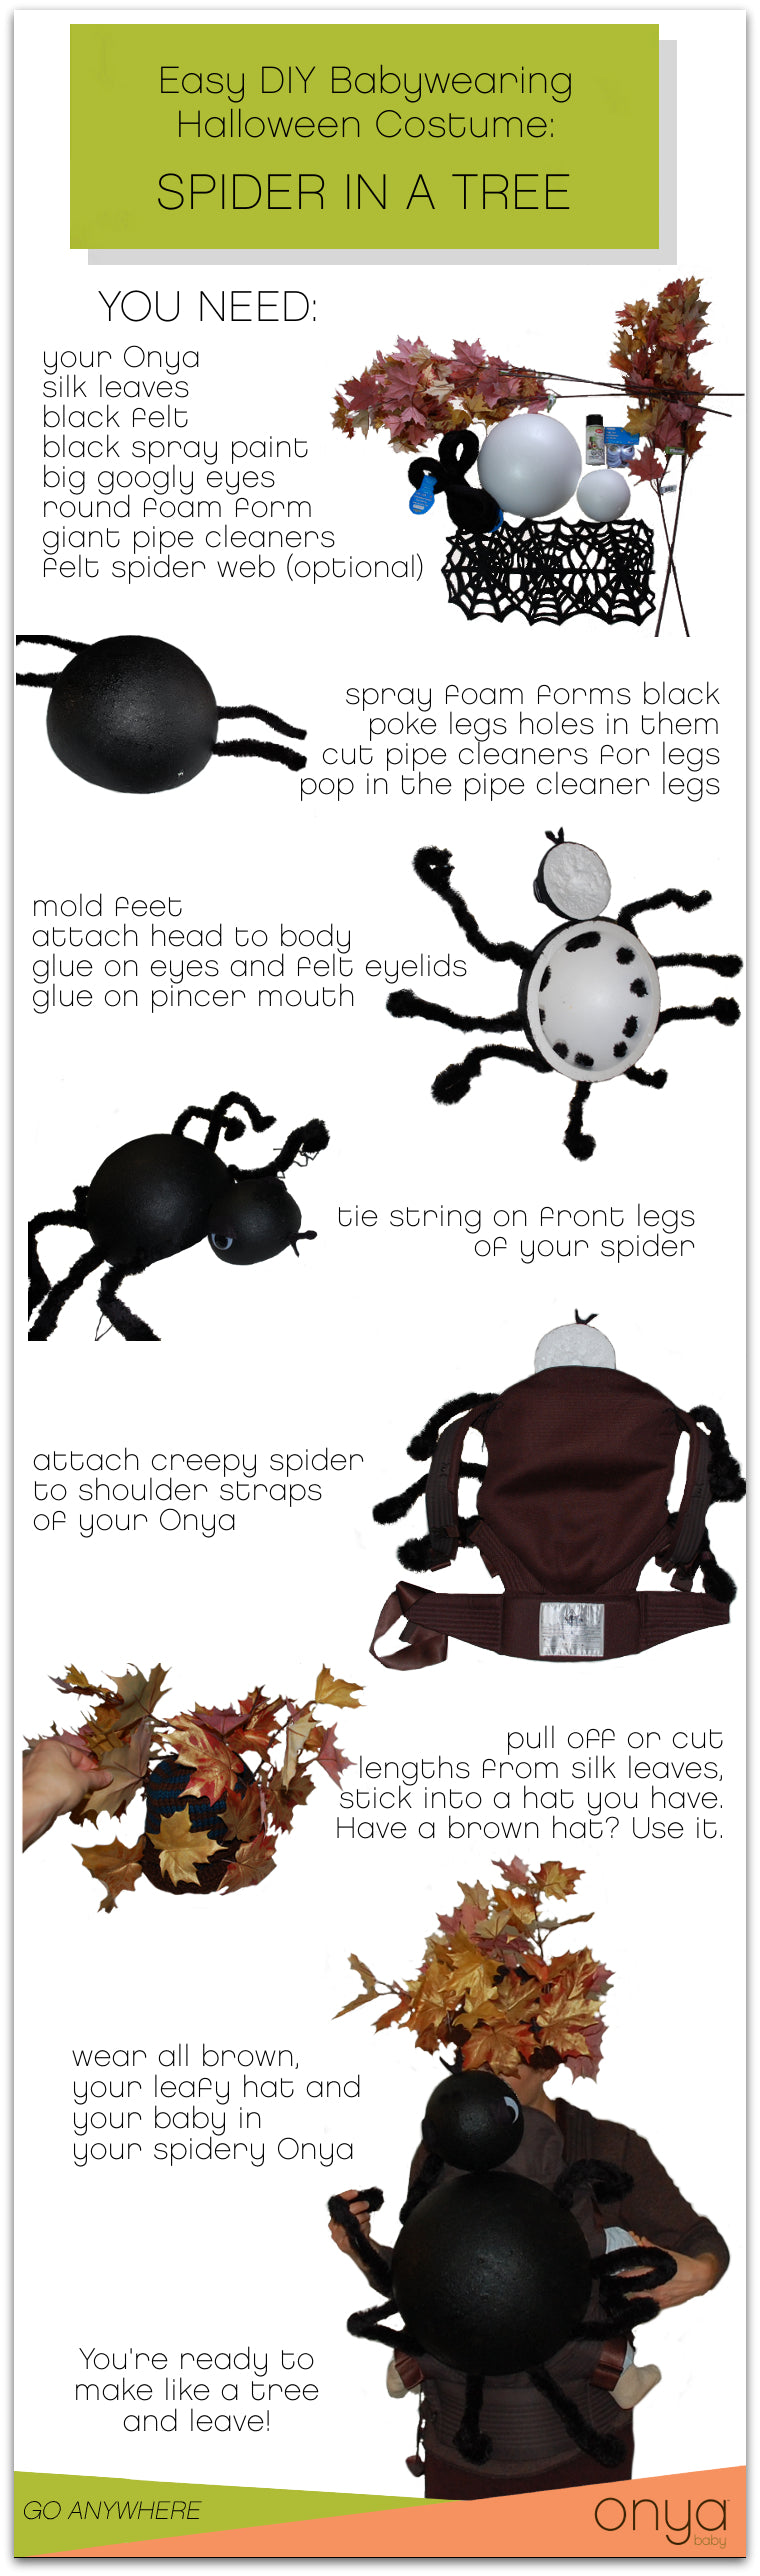 Easy DIY babywearing spider in a tree costume